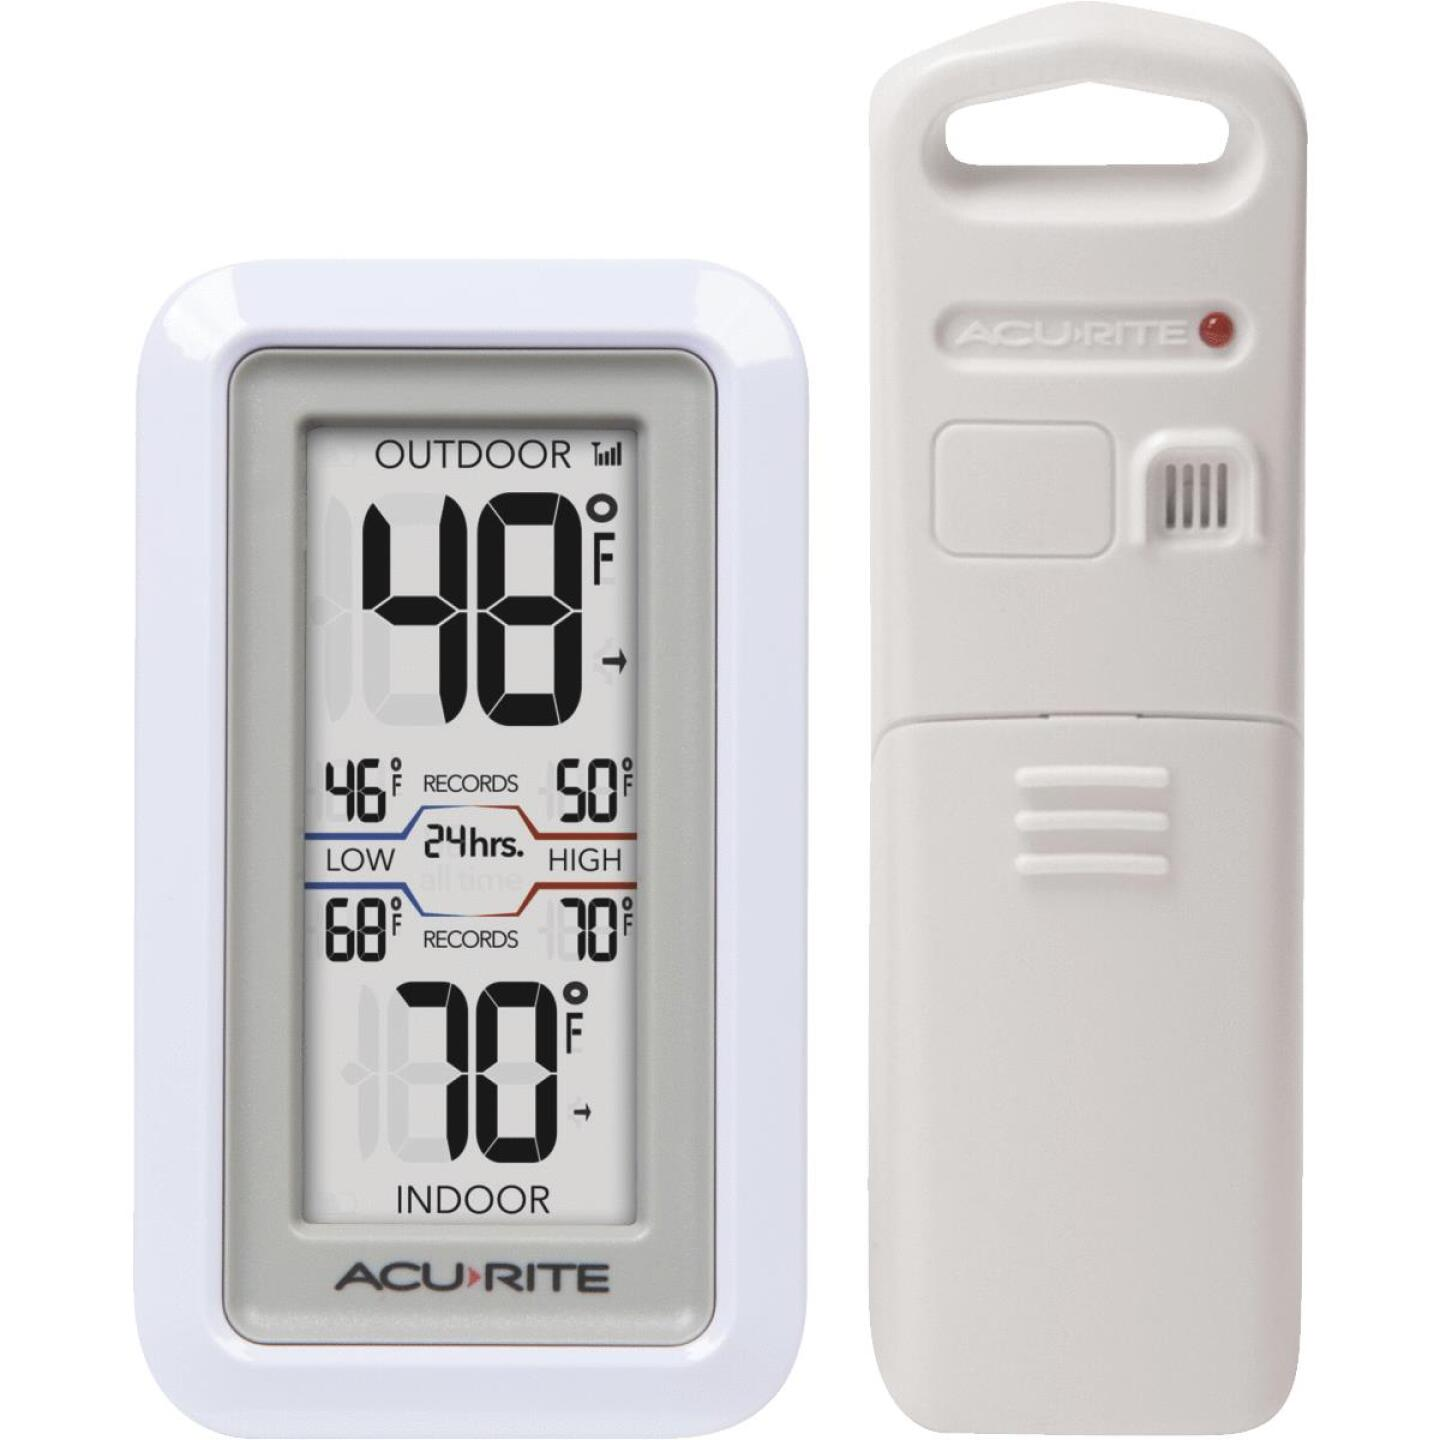 Acu-Rite Digital Thermometer with Indoor/Outdoor Sensor Image 1